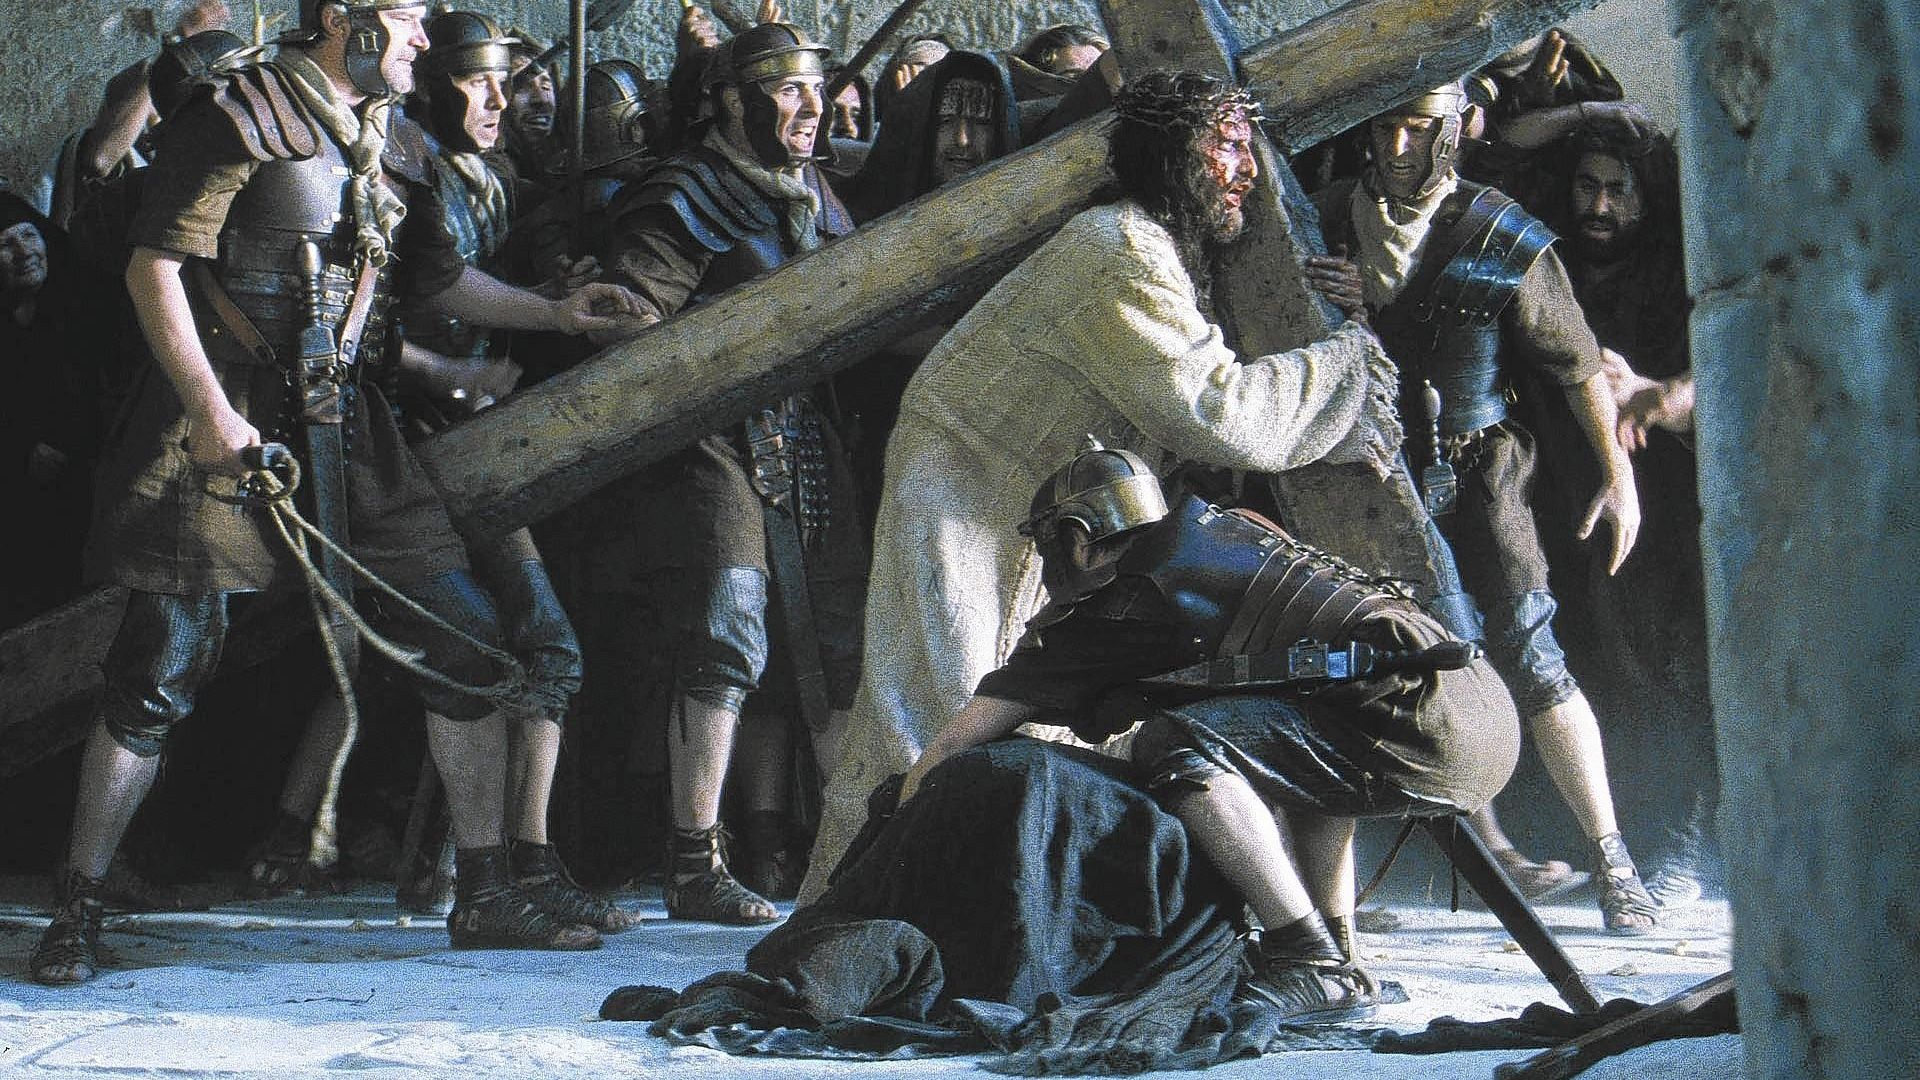 comPOSERS Episode 106: The Passion of the Christ